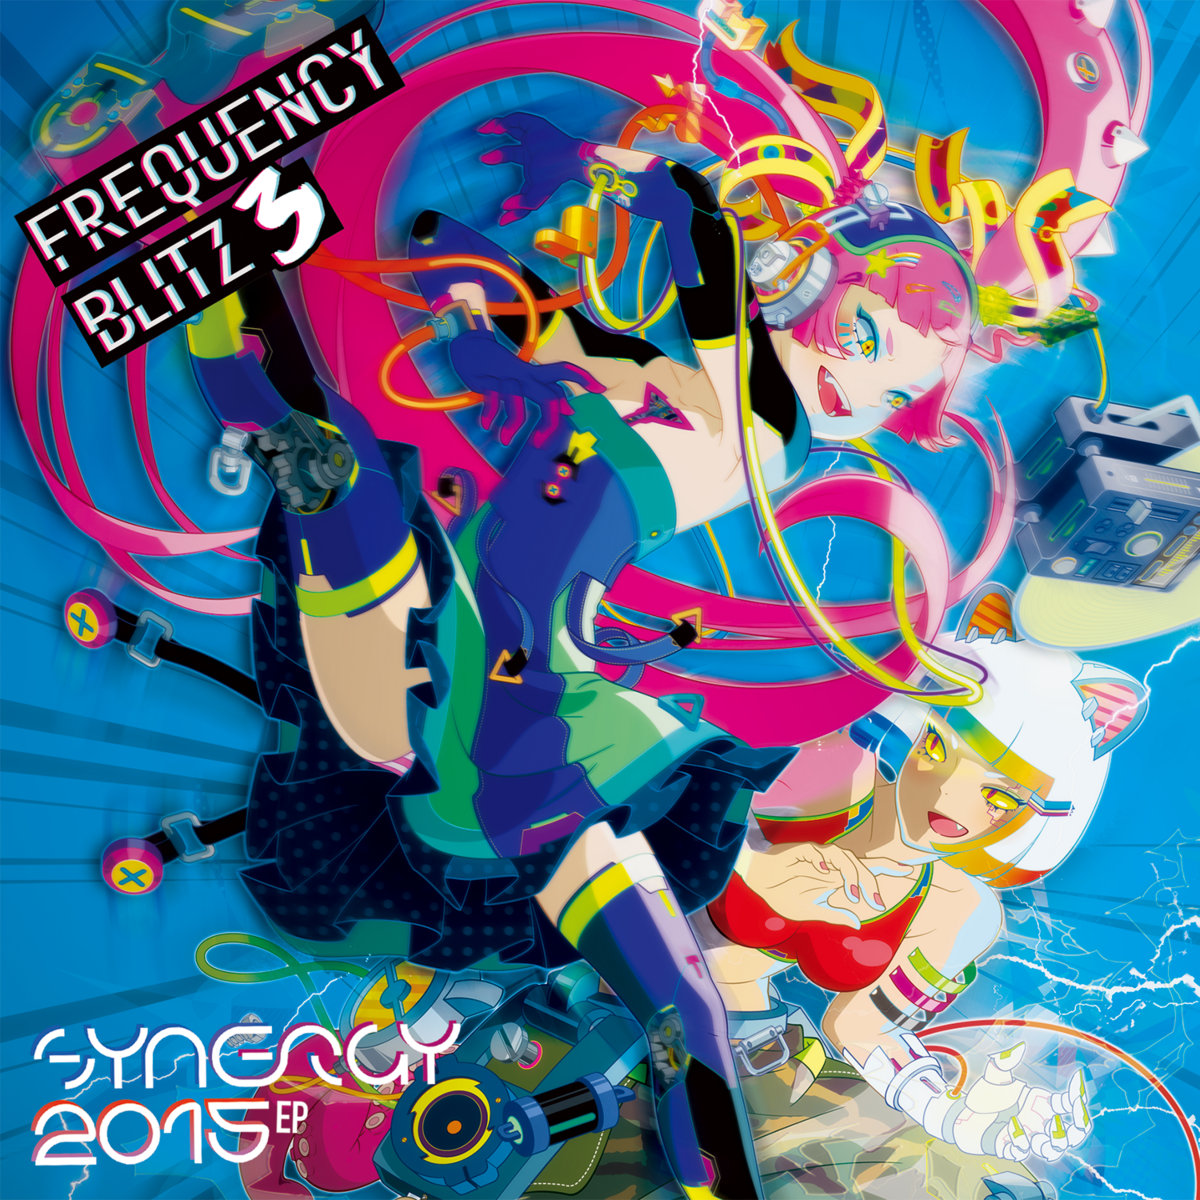 FREQUENCY BLITZ 3/Synergy 2015 EP set | Attack The Music